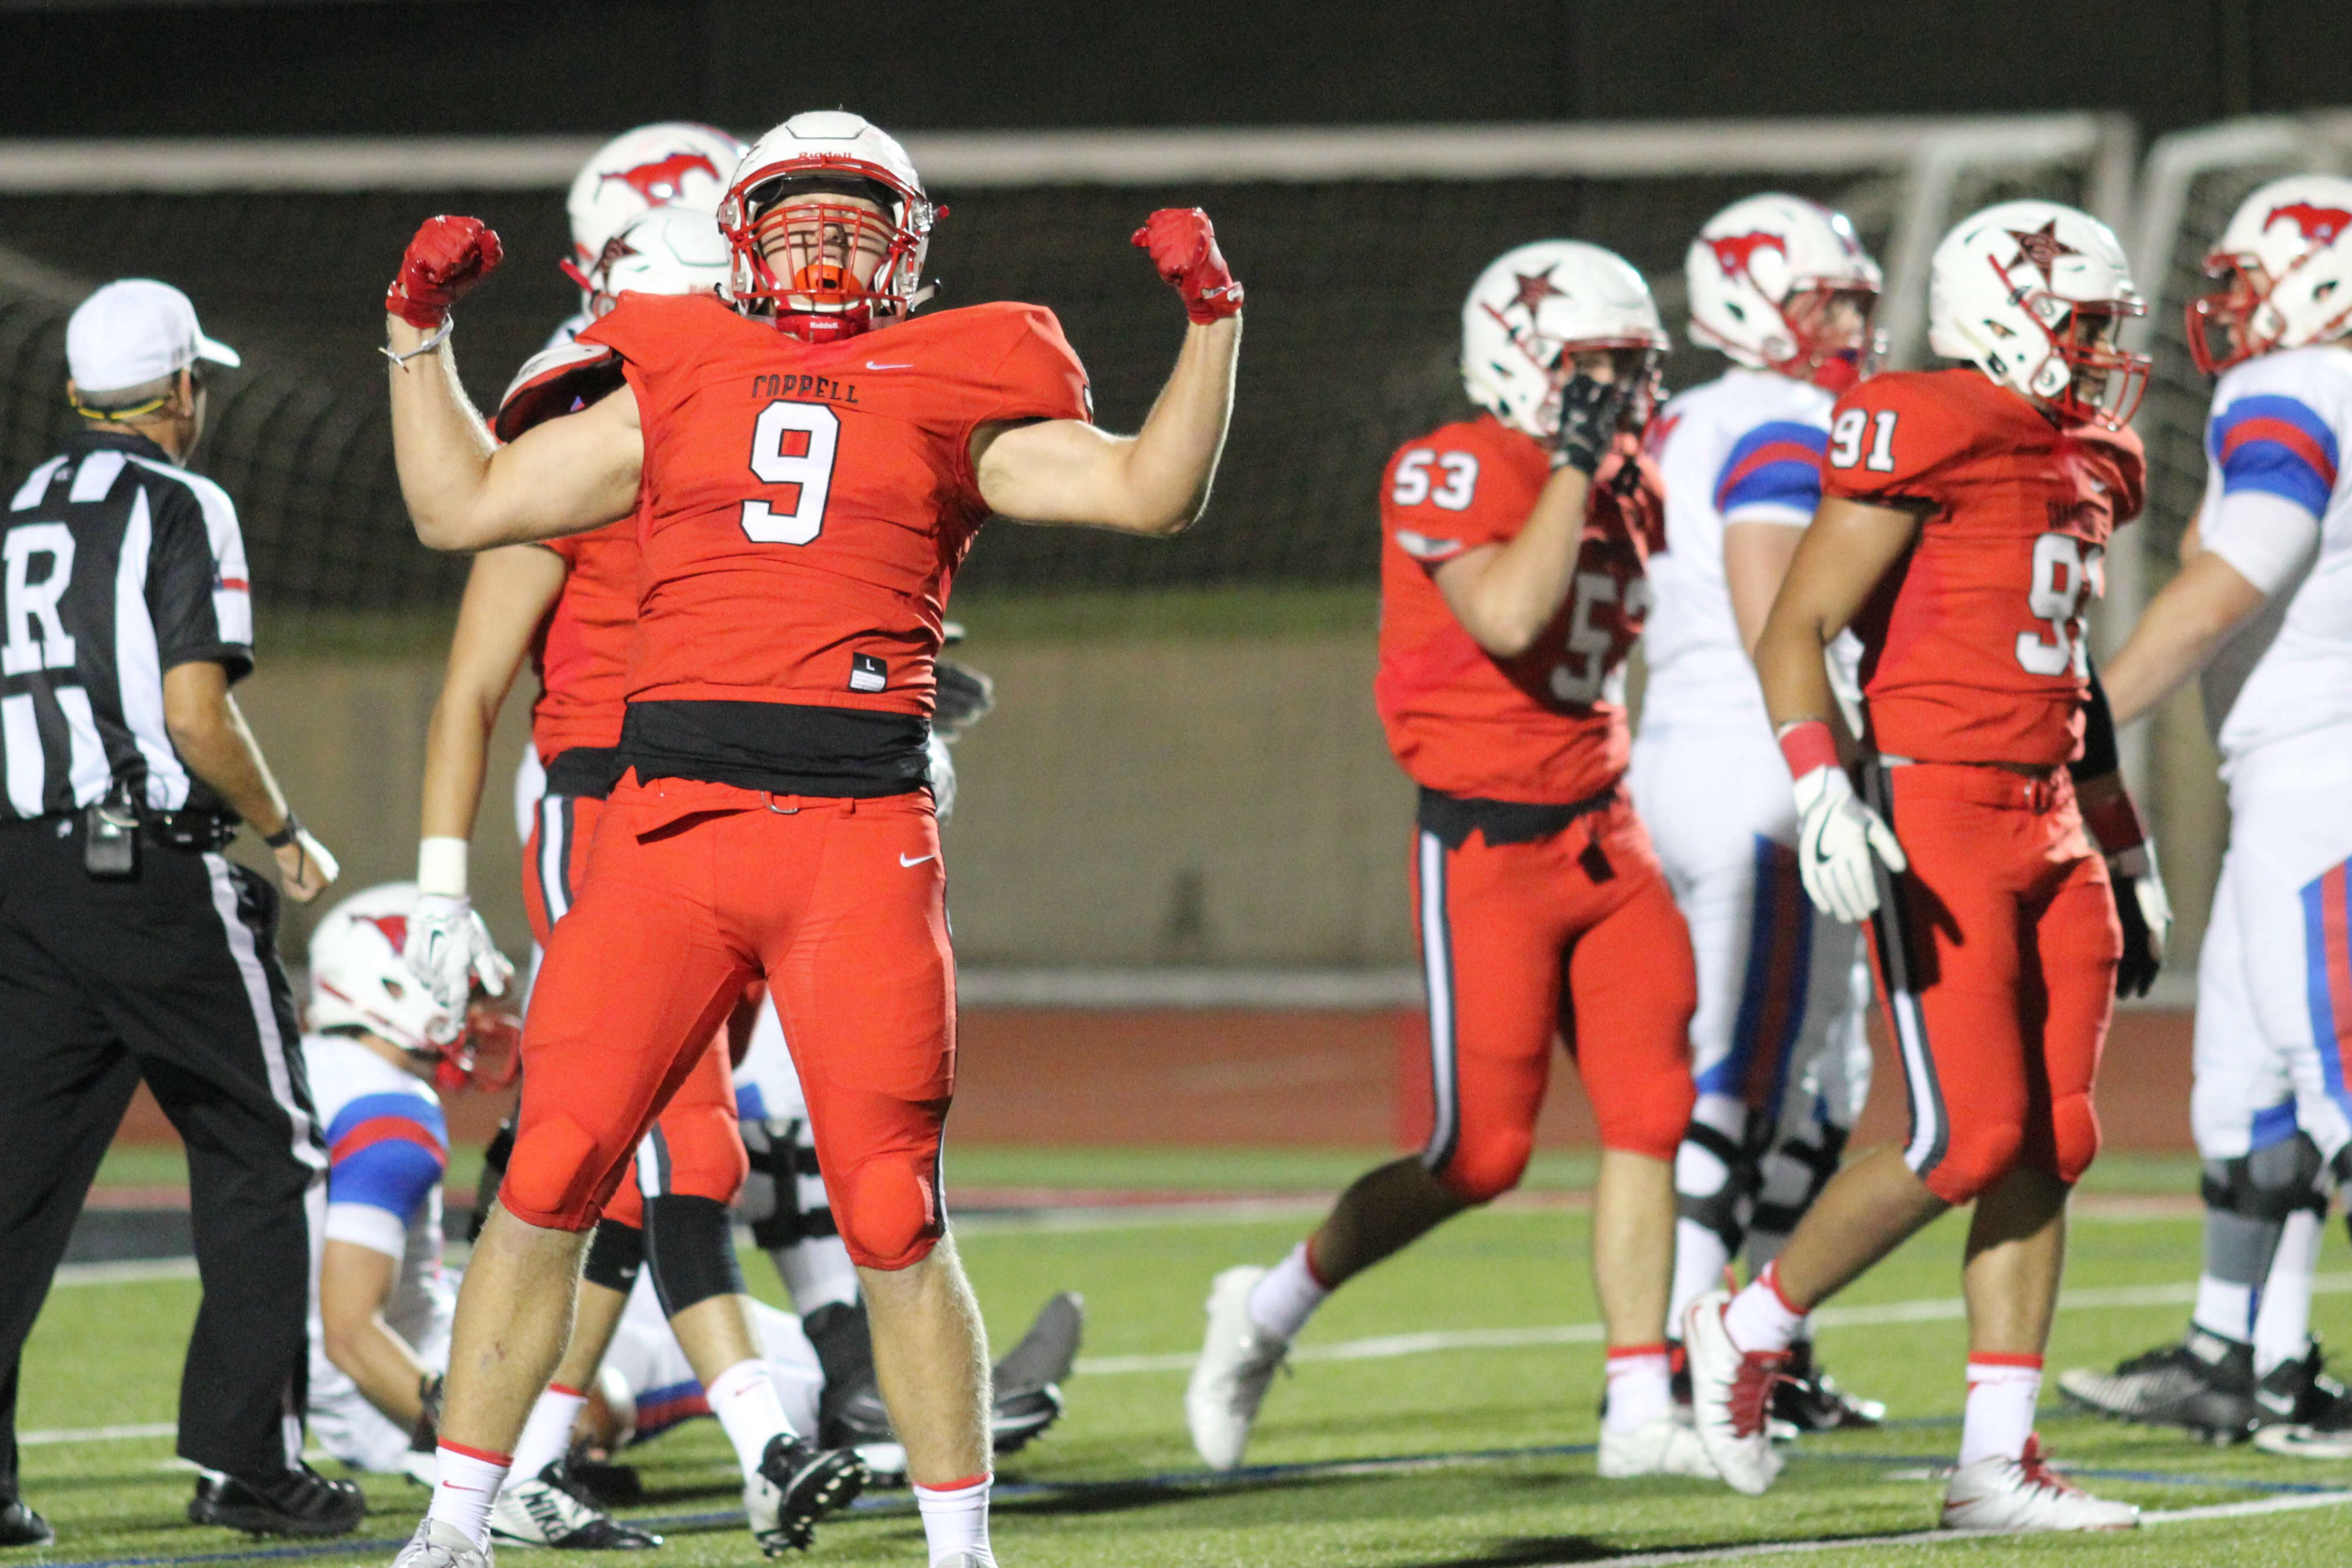 Sophomore defensive lineman Jr Barker celebrates after a second quarter sack in Coppell's 48-16 win over Richardson Pearce. The Cowboys defense improved massively from last week's loss, allowing only 54 yards rushing in the game.